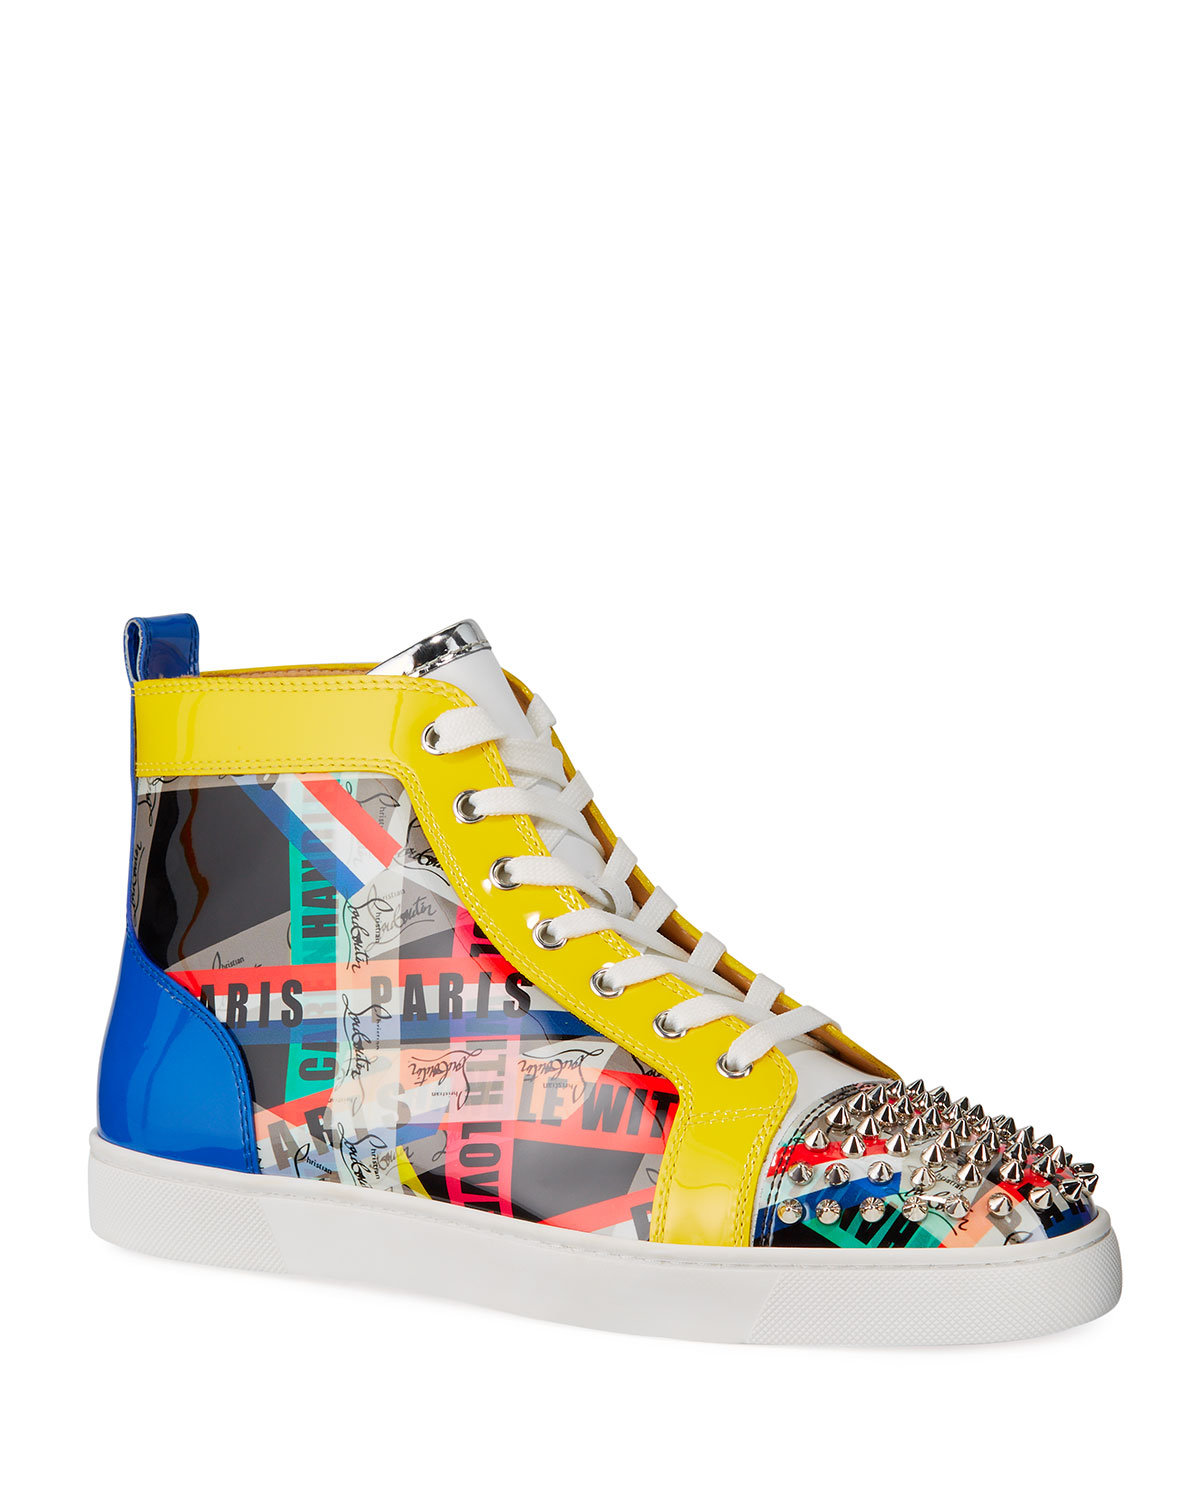 the best attitude 9ad70 3b198 Men's Lou Spikes LoubiBallage High-Top Sneakers with Spikes